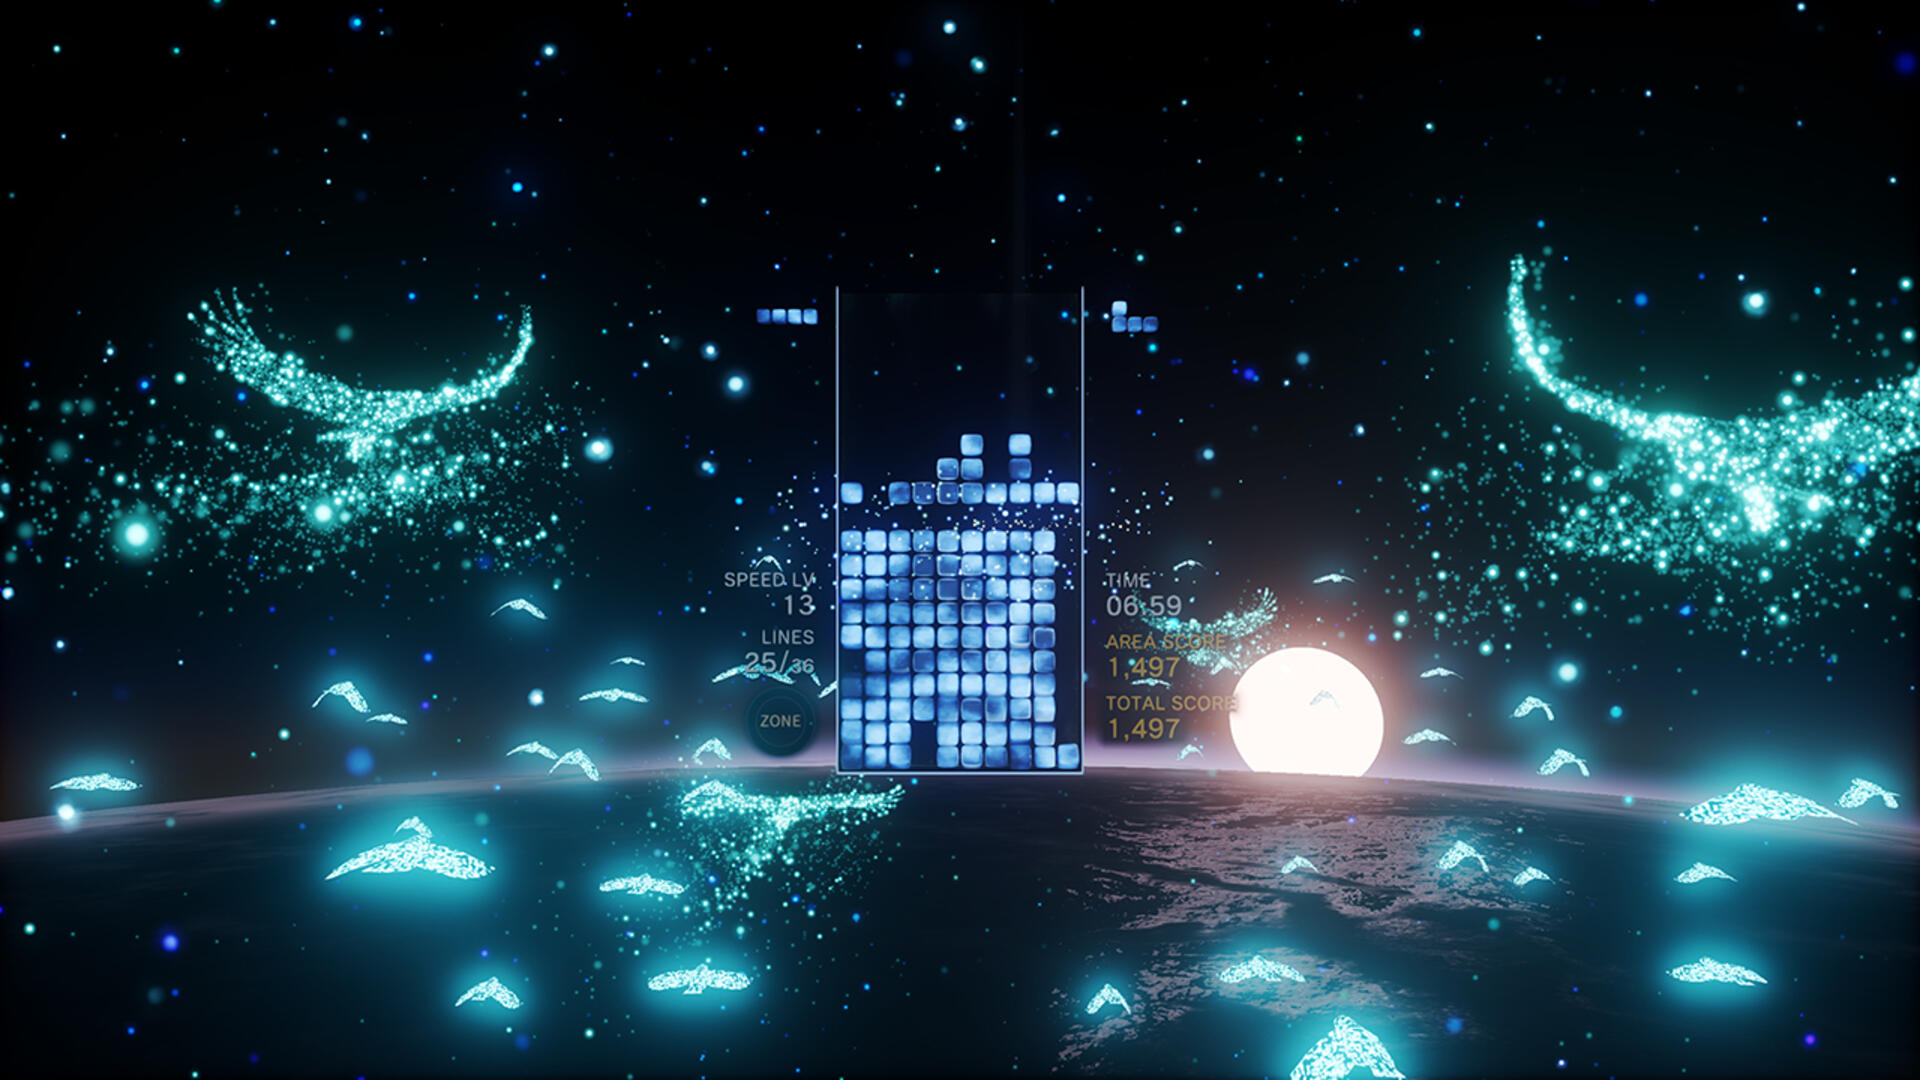 The Makers of Tetris Effect Are Targeting Next-Gen Consoles for Next Game